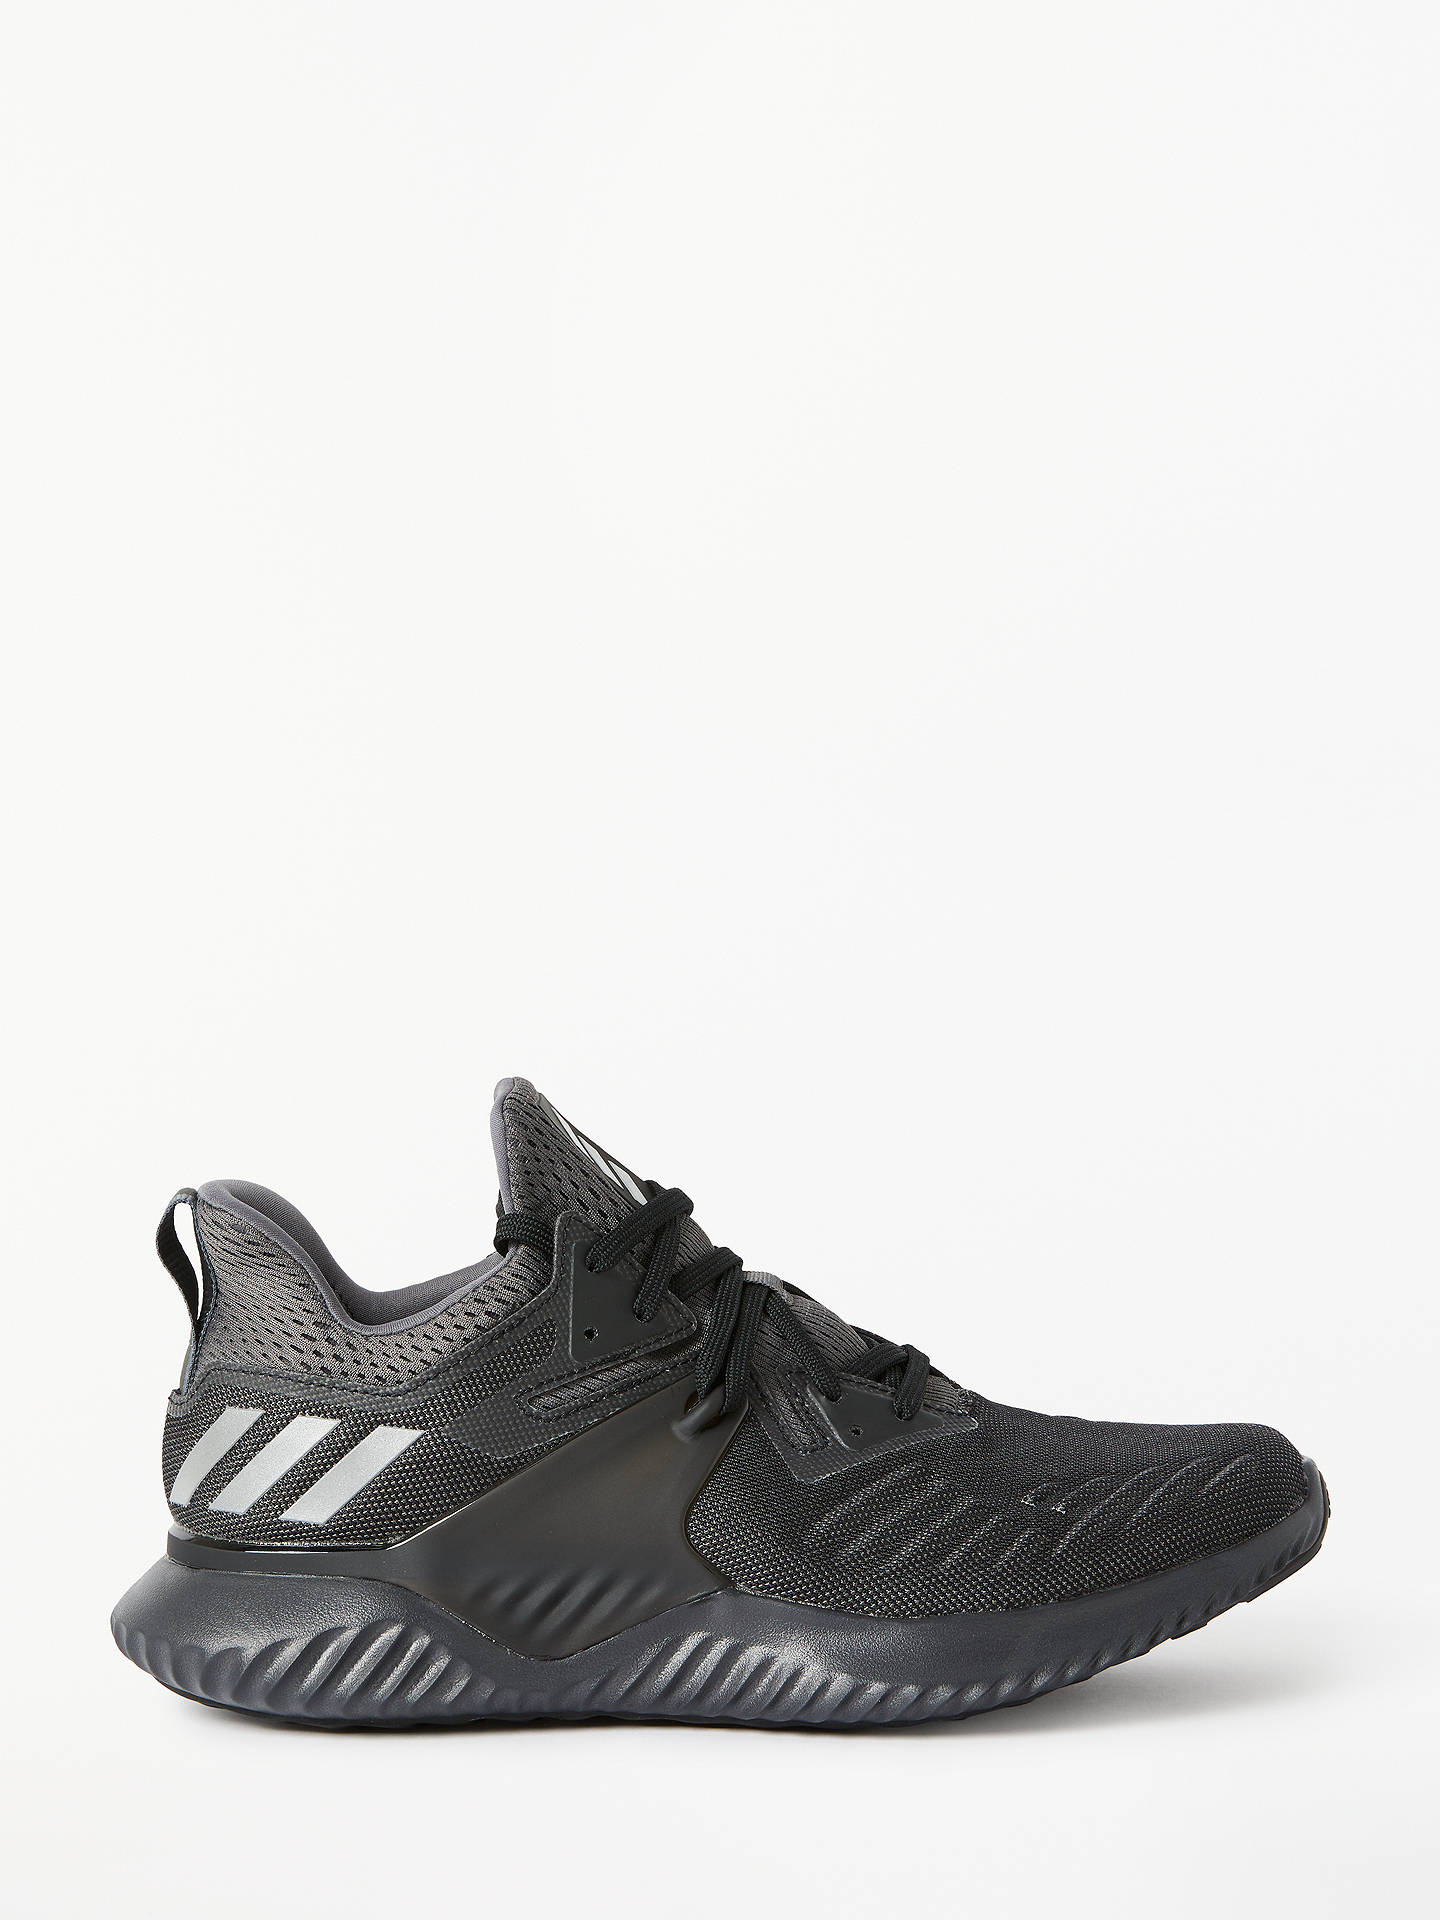 ebbfff0a47dd adidas Alphabounce Beyond 2.0 Men s Running Shoes at John Lewis ...